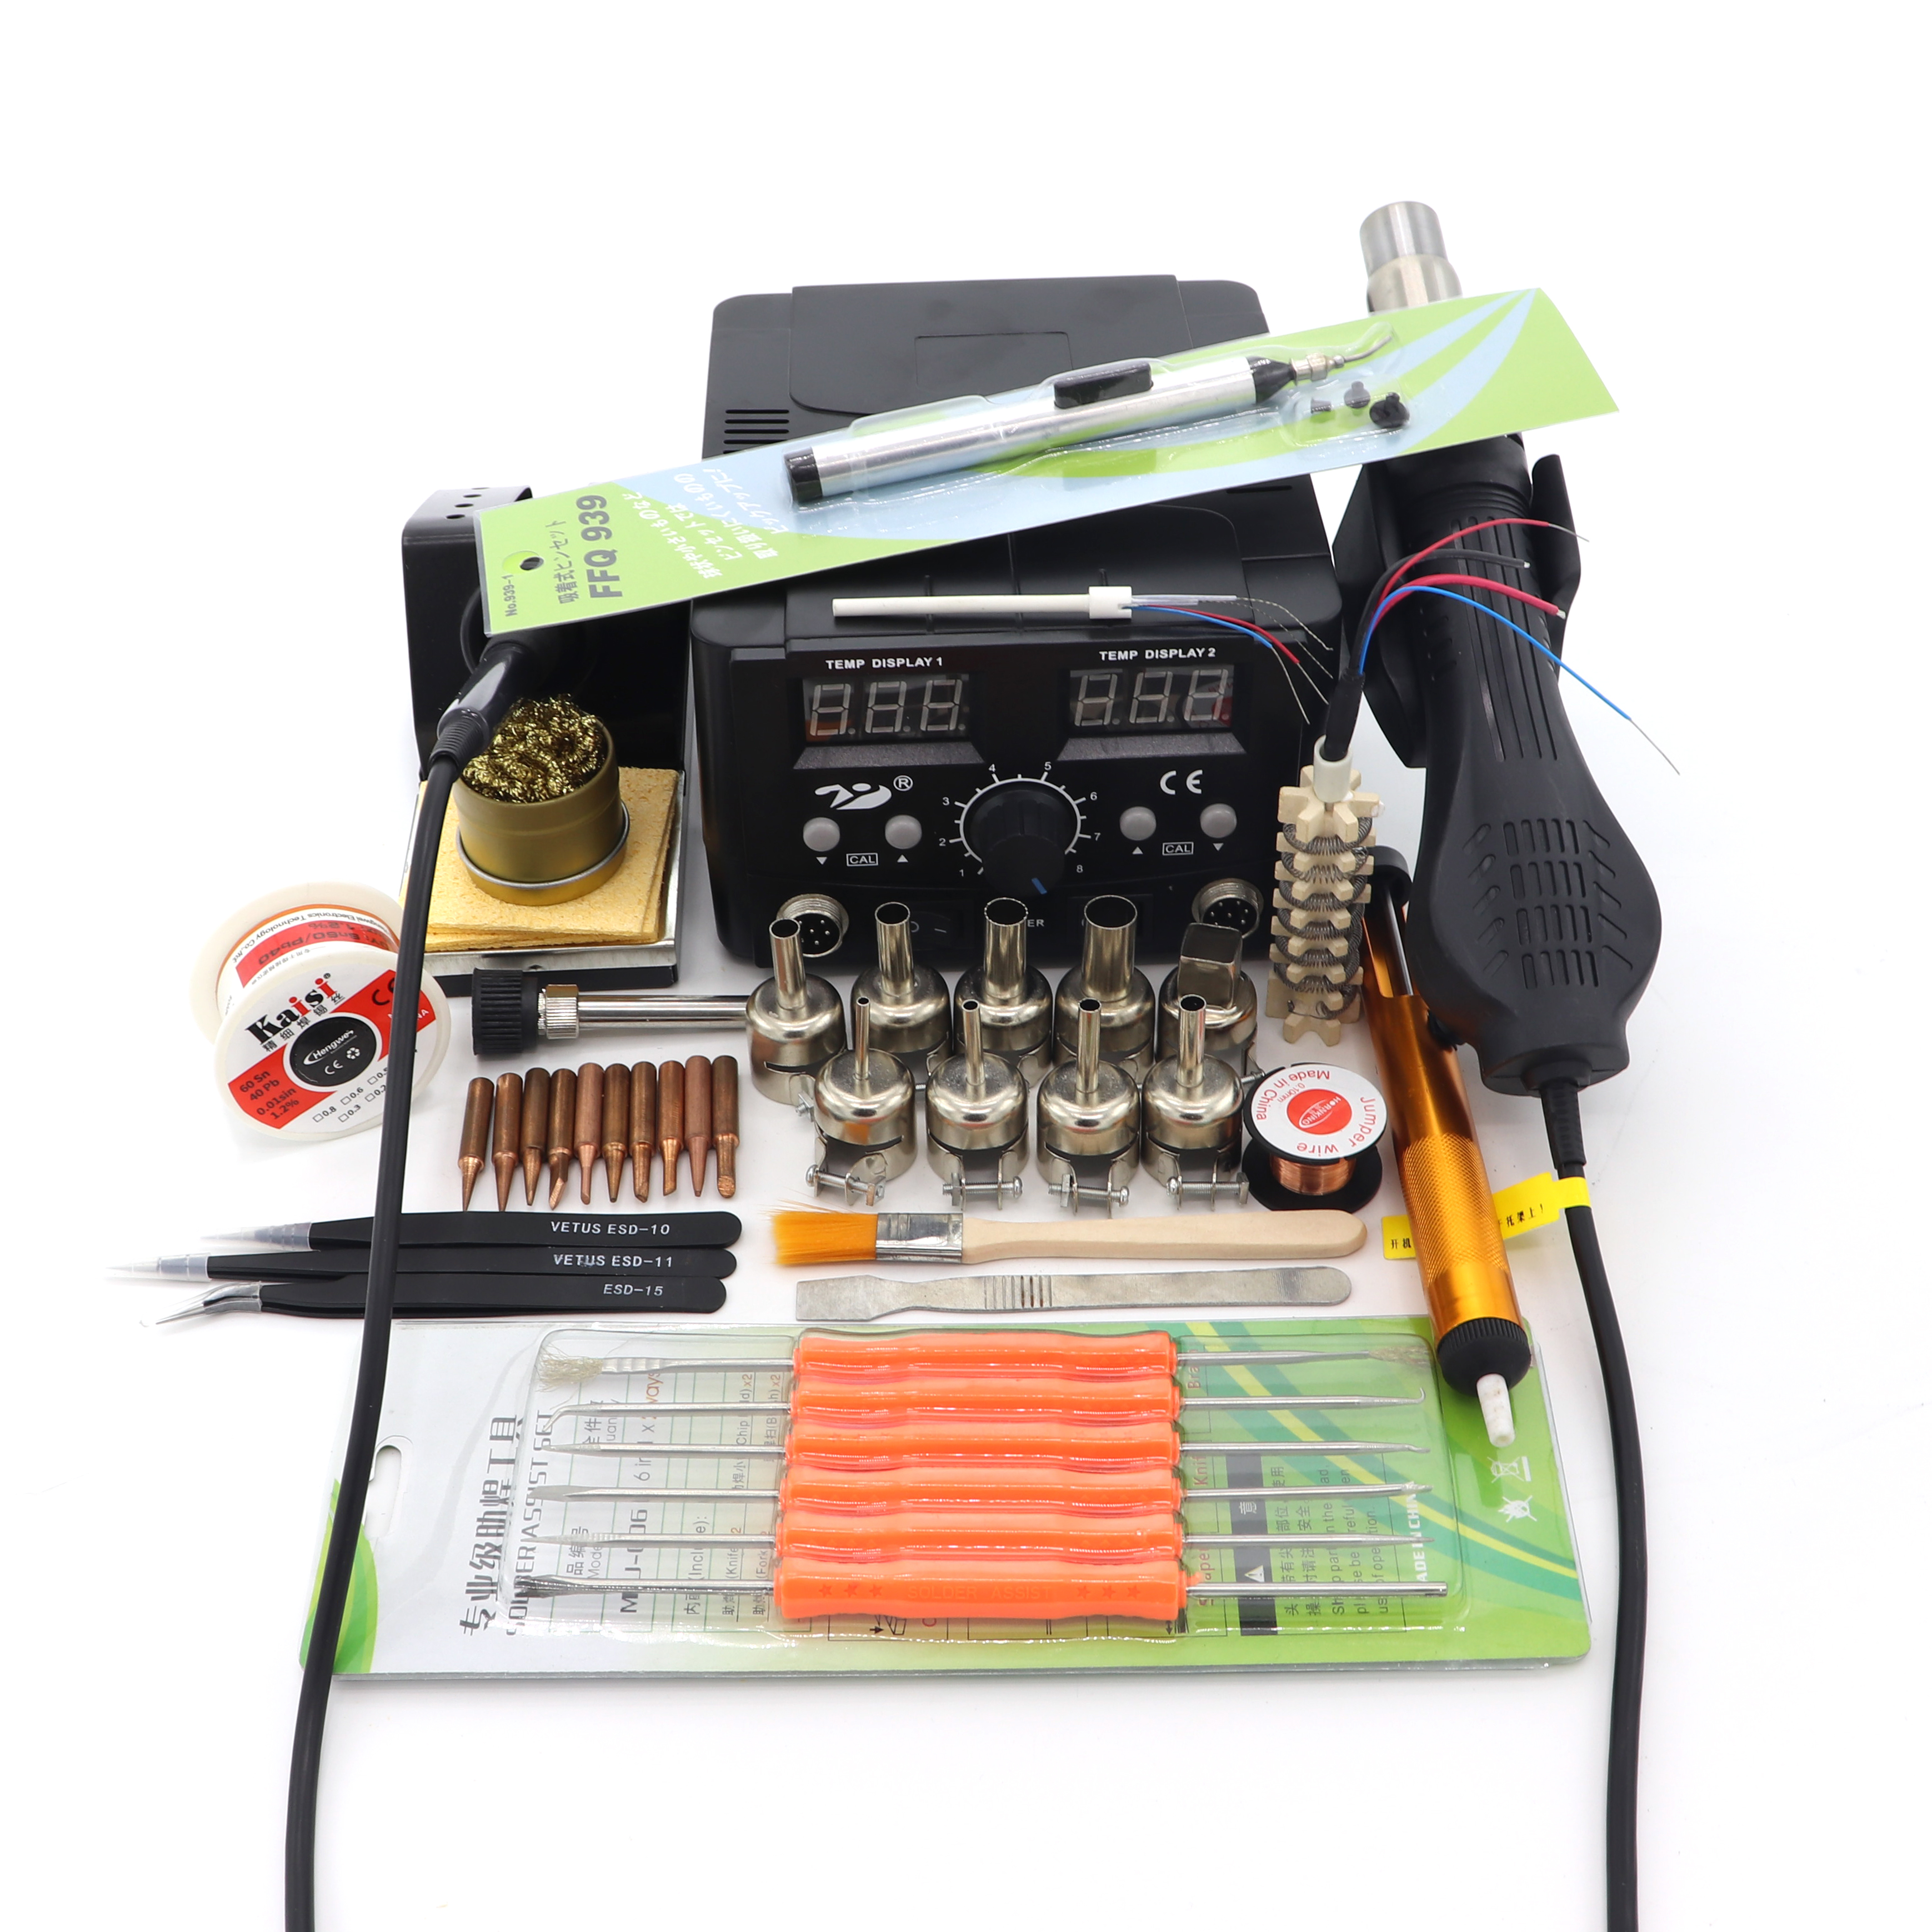 8582D Hot Air Soldering Station Two-in-one Large Screen Soldering Station For Electronic Welding Removal Tools